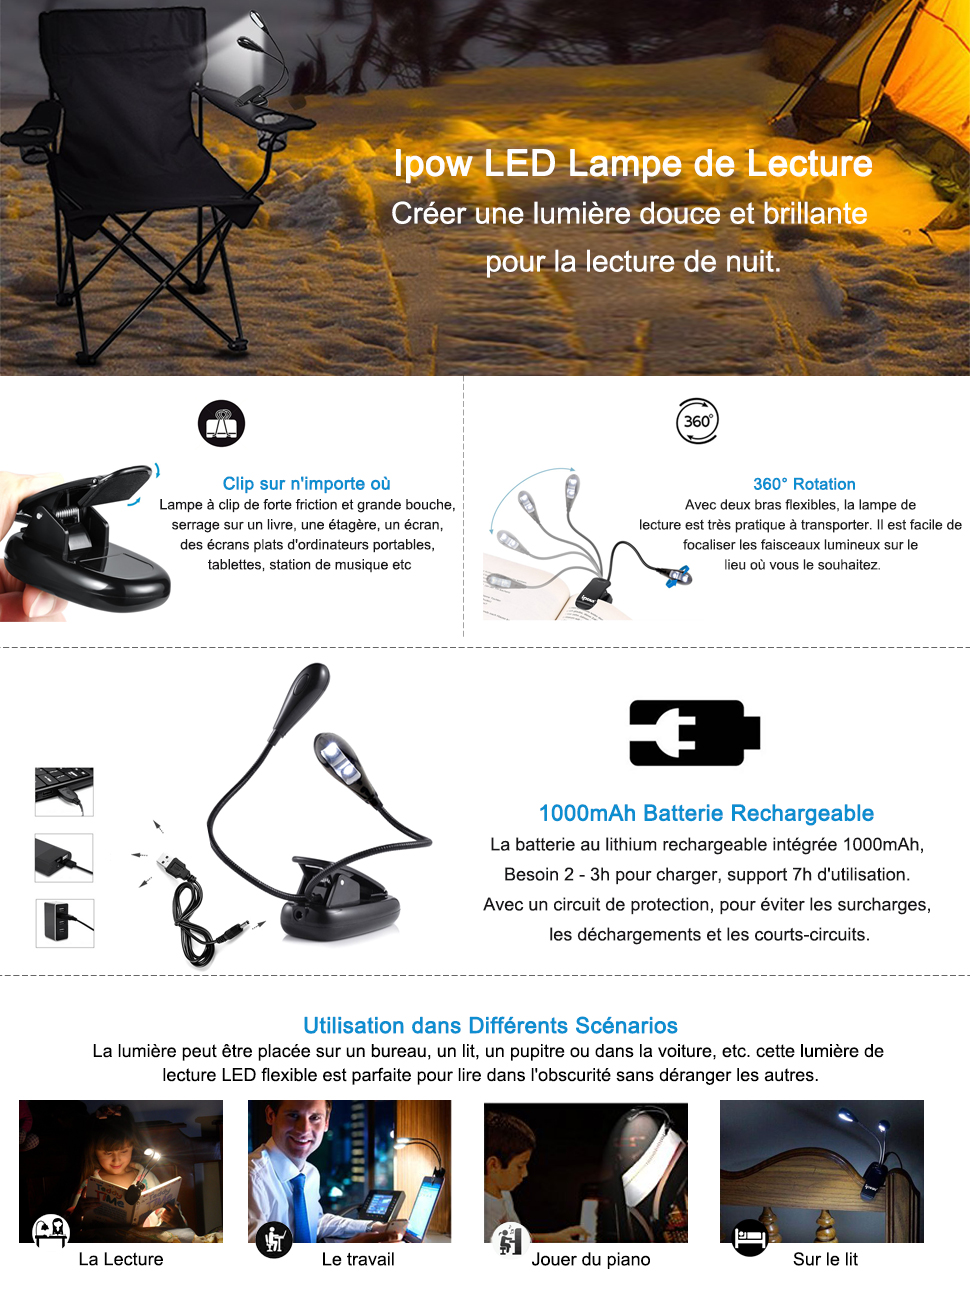 ipow lampe de lecture led rechargeable lumi re flexible clip 4 niveaux de luminosit avec. Black Bedroom Furniture Sets. Home Design Ideas